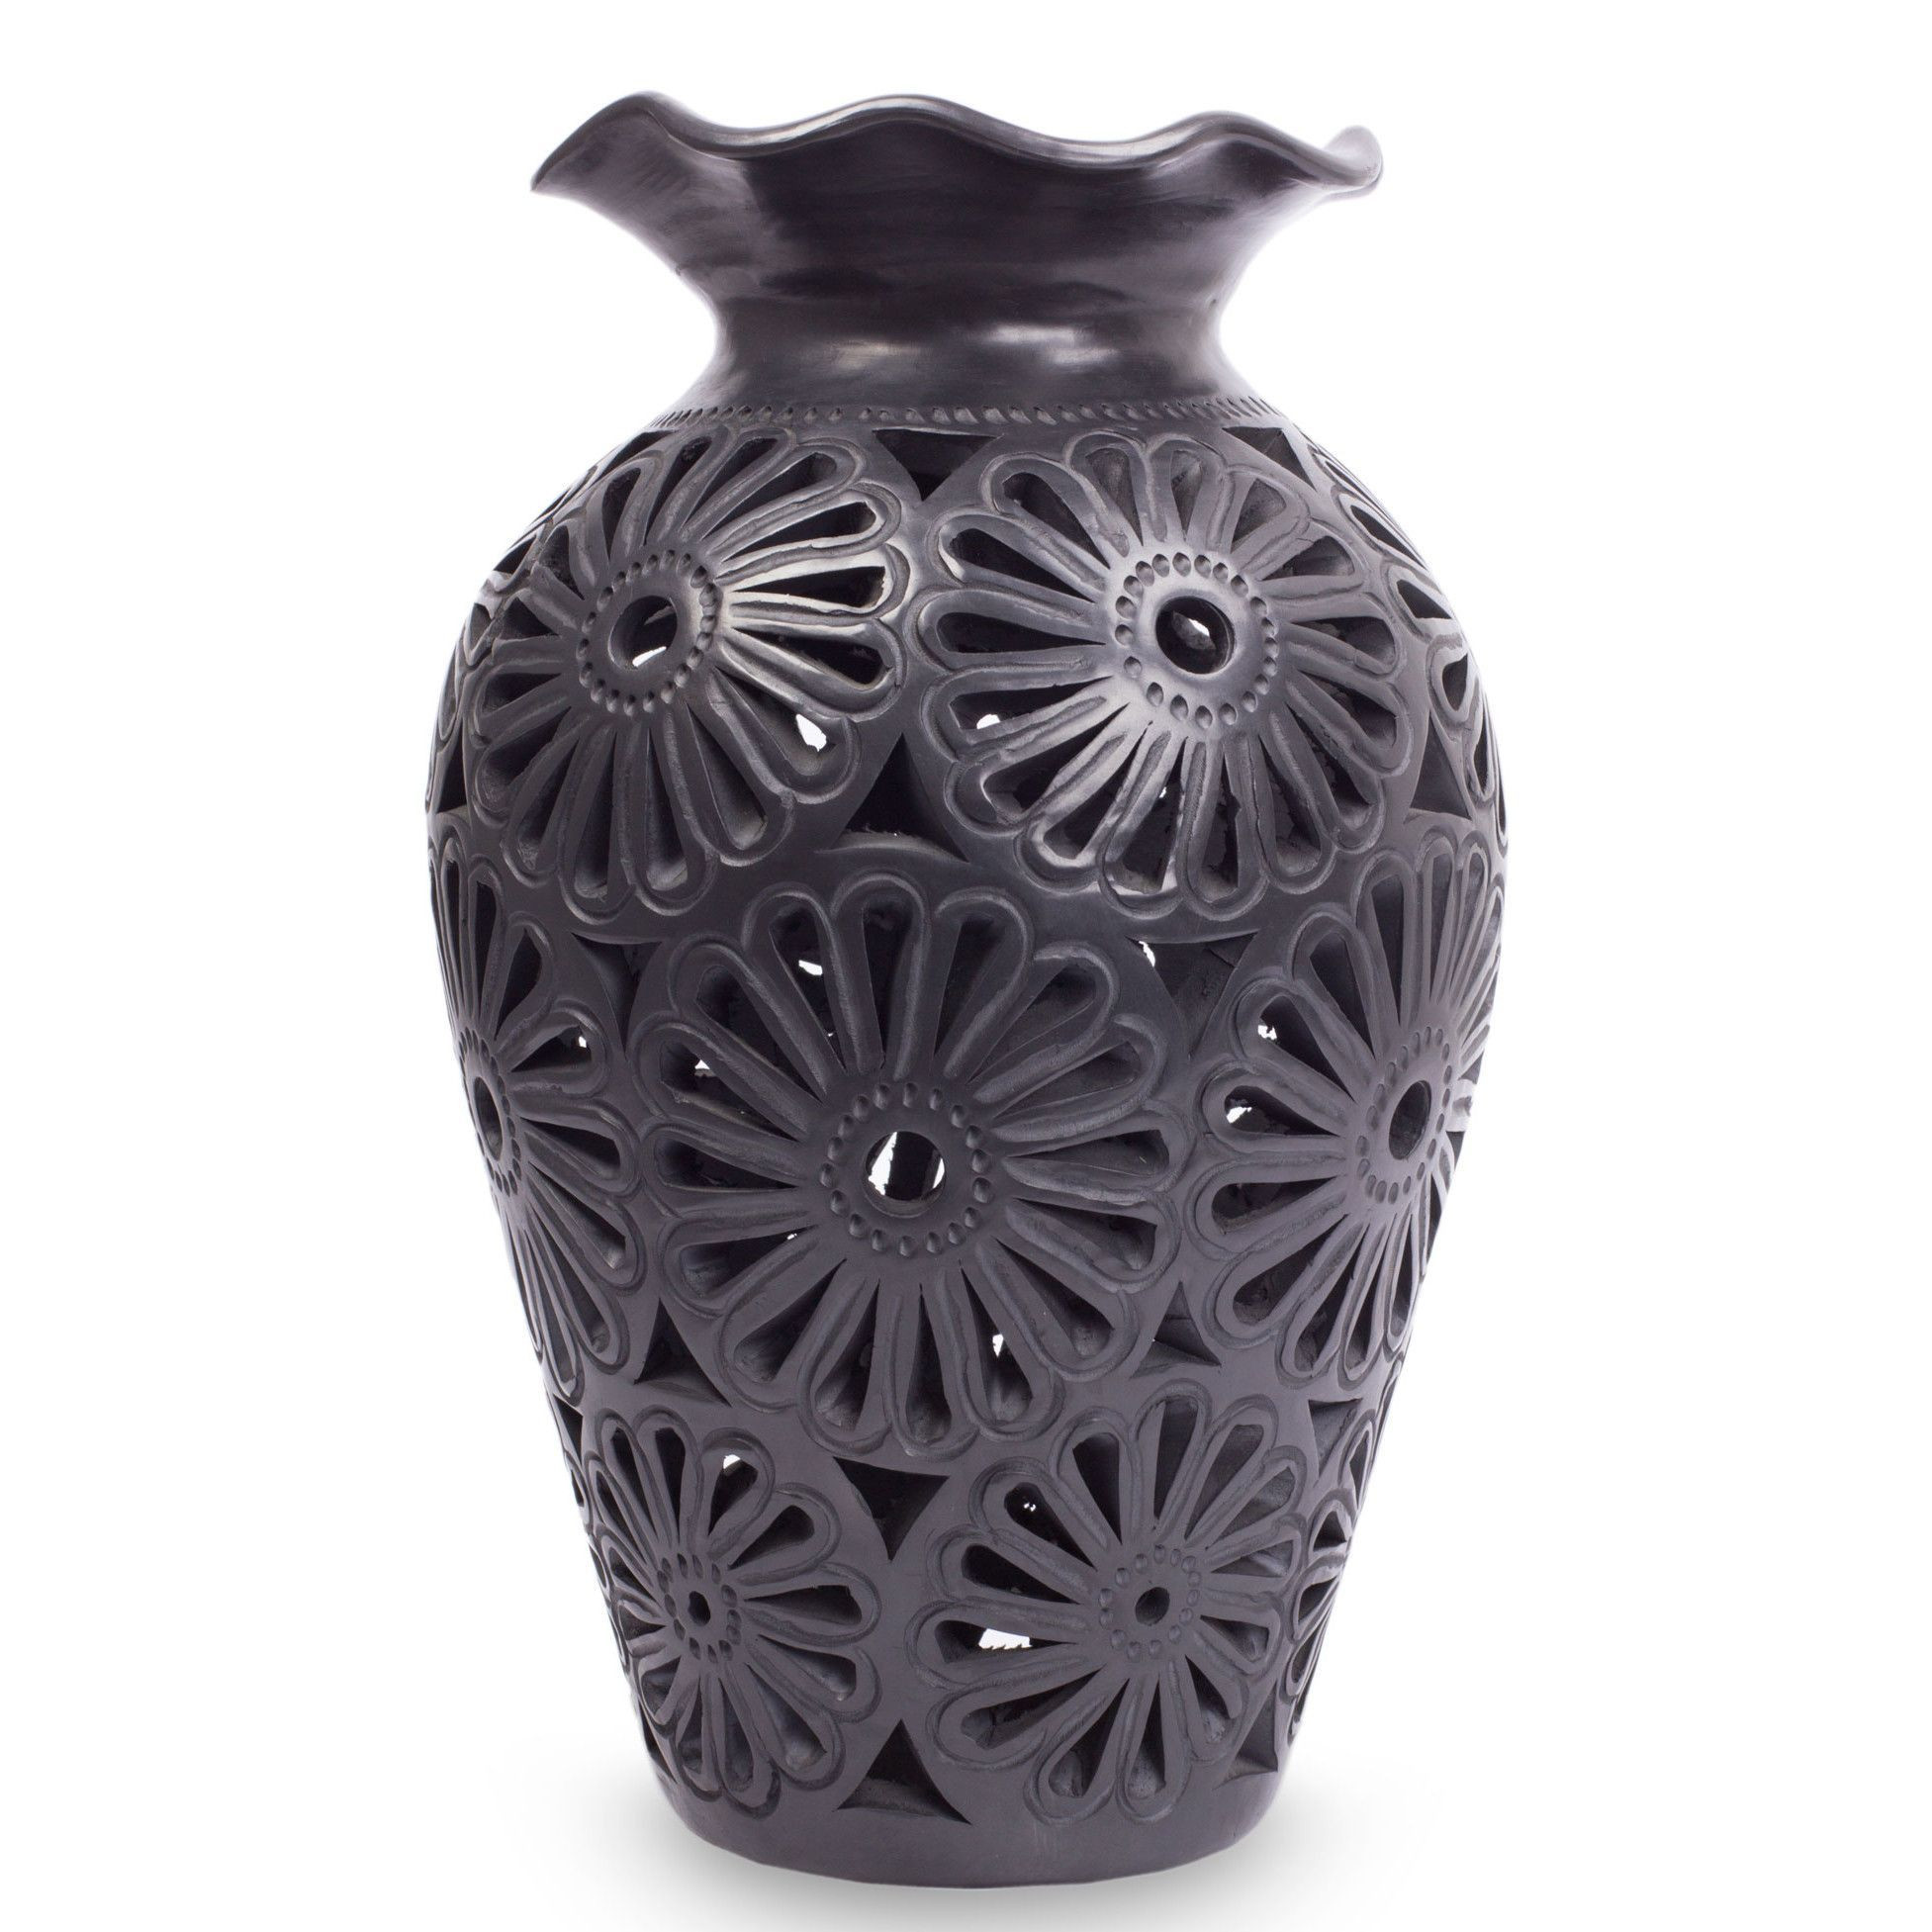 21 Awesome White Ceramic Decorative Vases